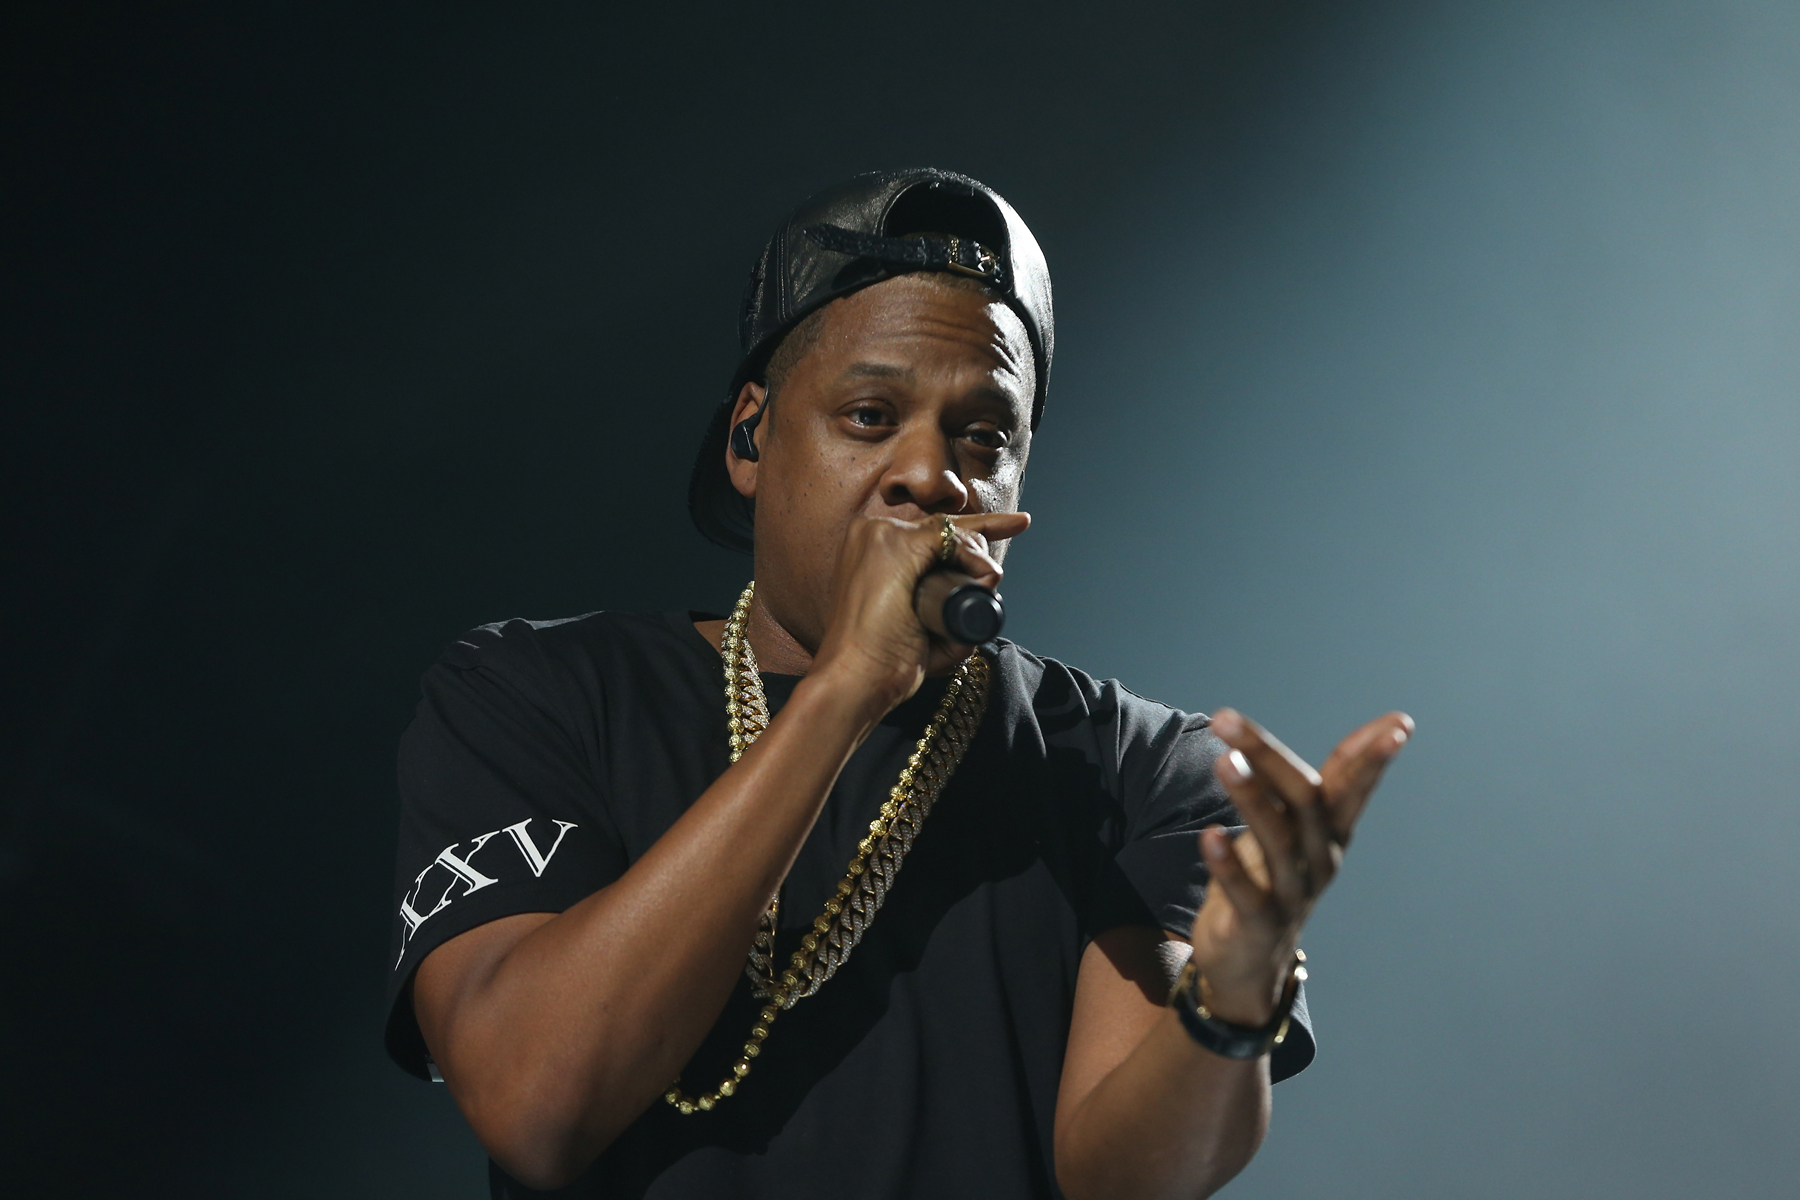 Jay z ranks his albums from blueprint to kingdom come rolling jay z performs in saint paul minnesota malvernweather Choice Image